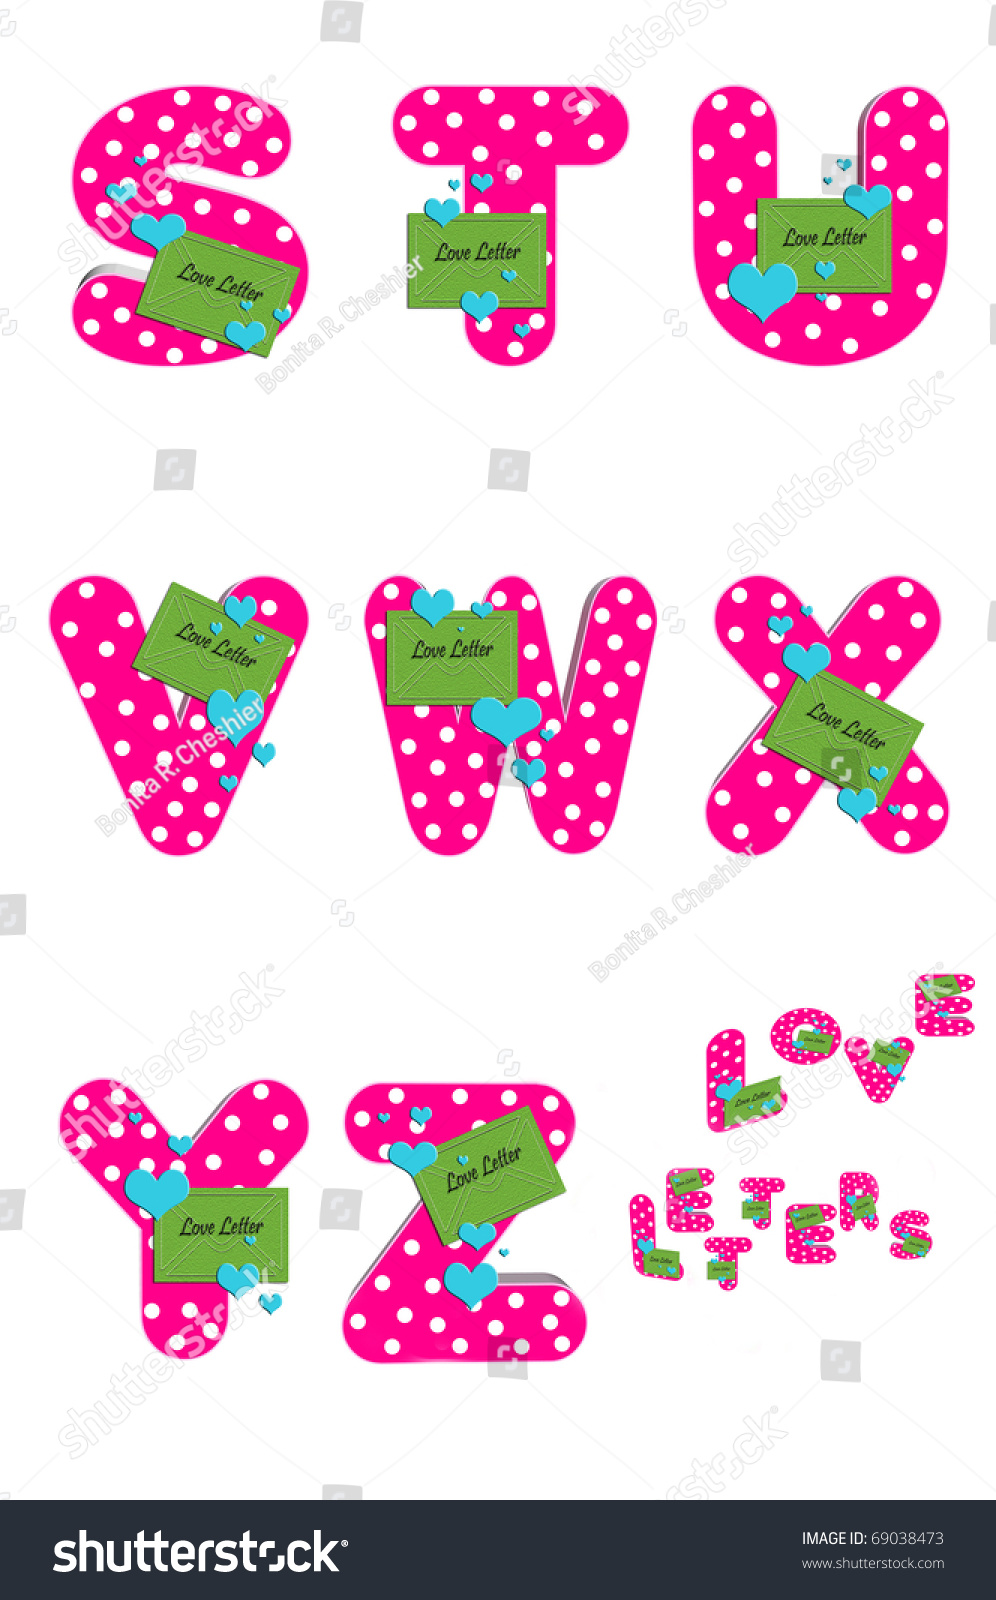 Love Words For Each Letter Of The Alphabet from image.shutterstock.com